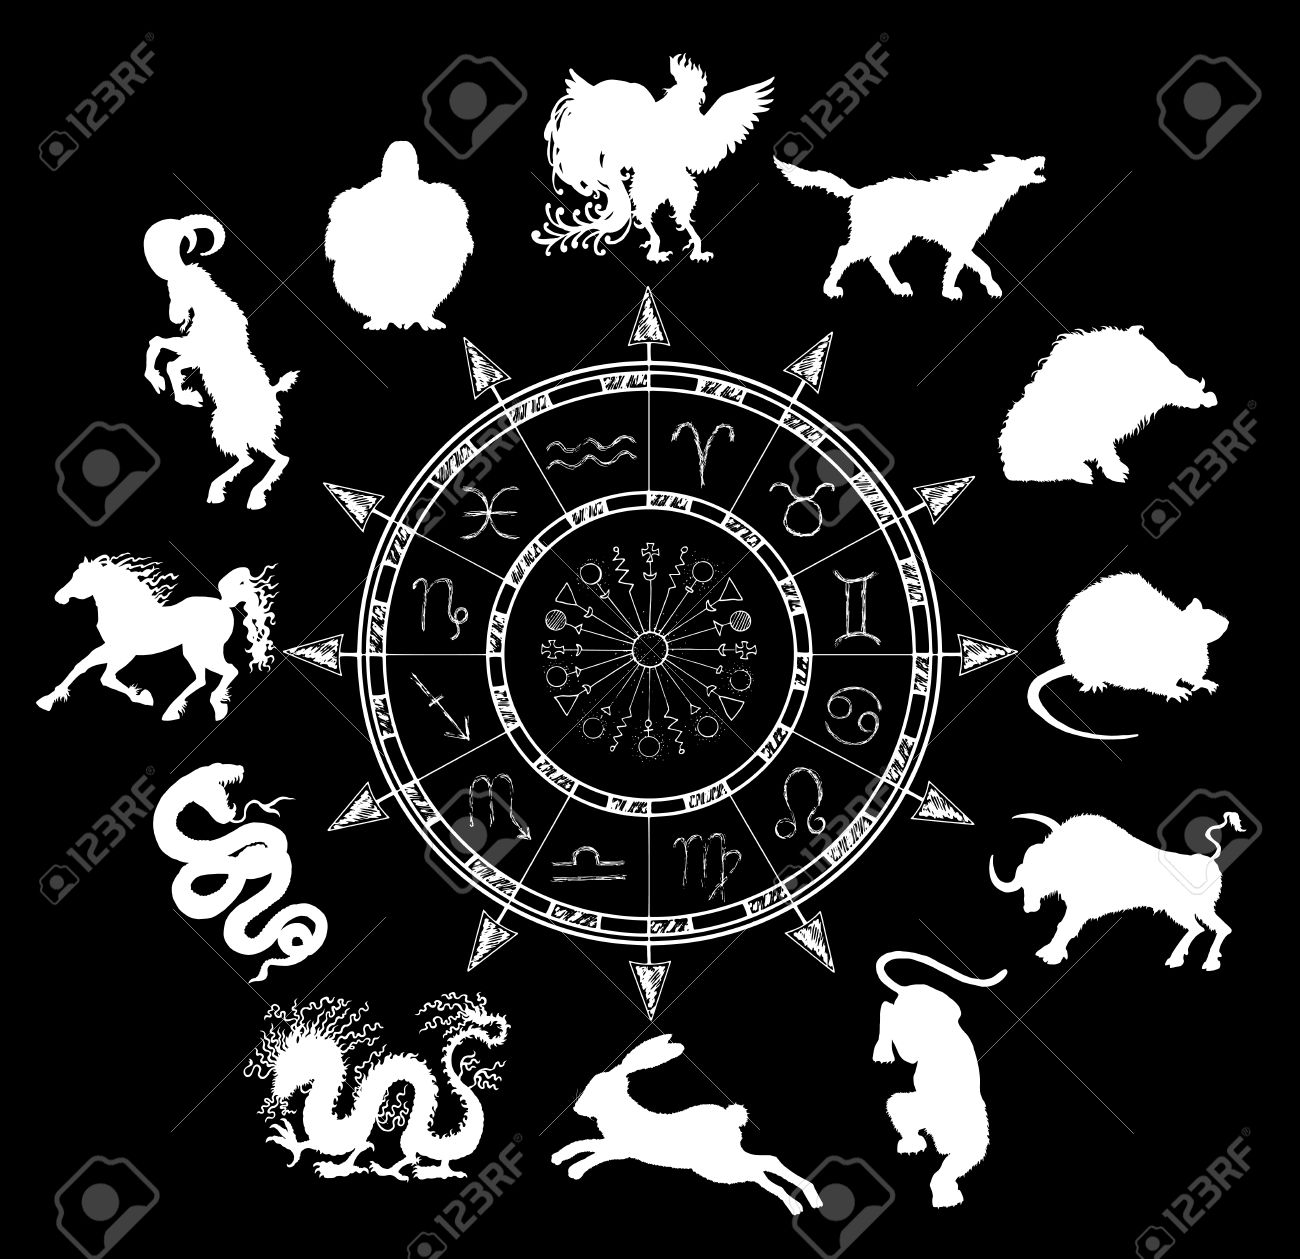 Black chart with horoscope symbols and chinese zodiac animals black chart with horoscope symbols and chinese zodiac animals silhouettes asian new year calendar signs buycottarizona